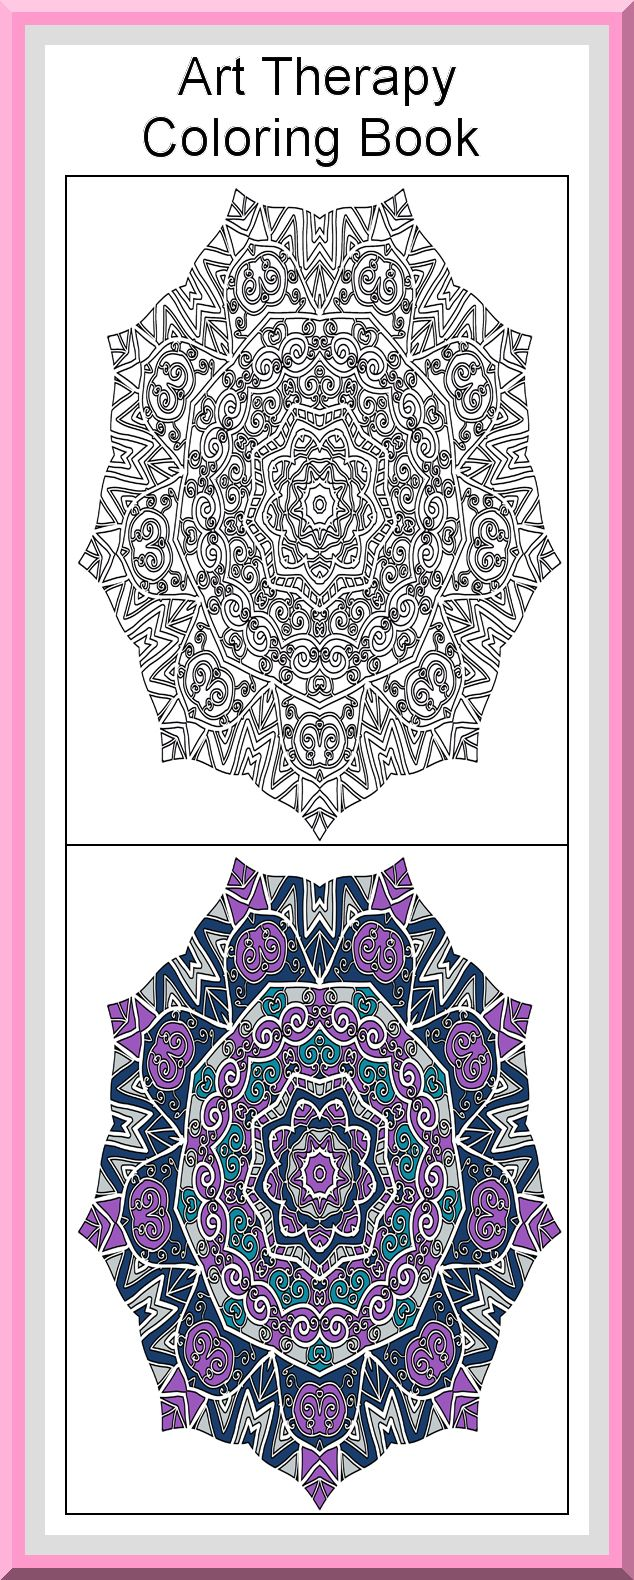 17 best images about coloring pages on pinterest coloring coloring books and mandalas. Black Bedroom Furniture Sets. Home Design Ideas